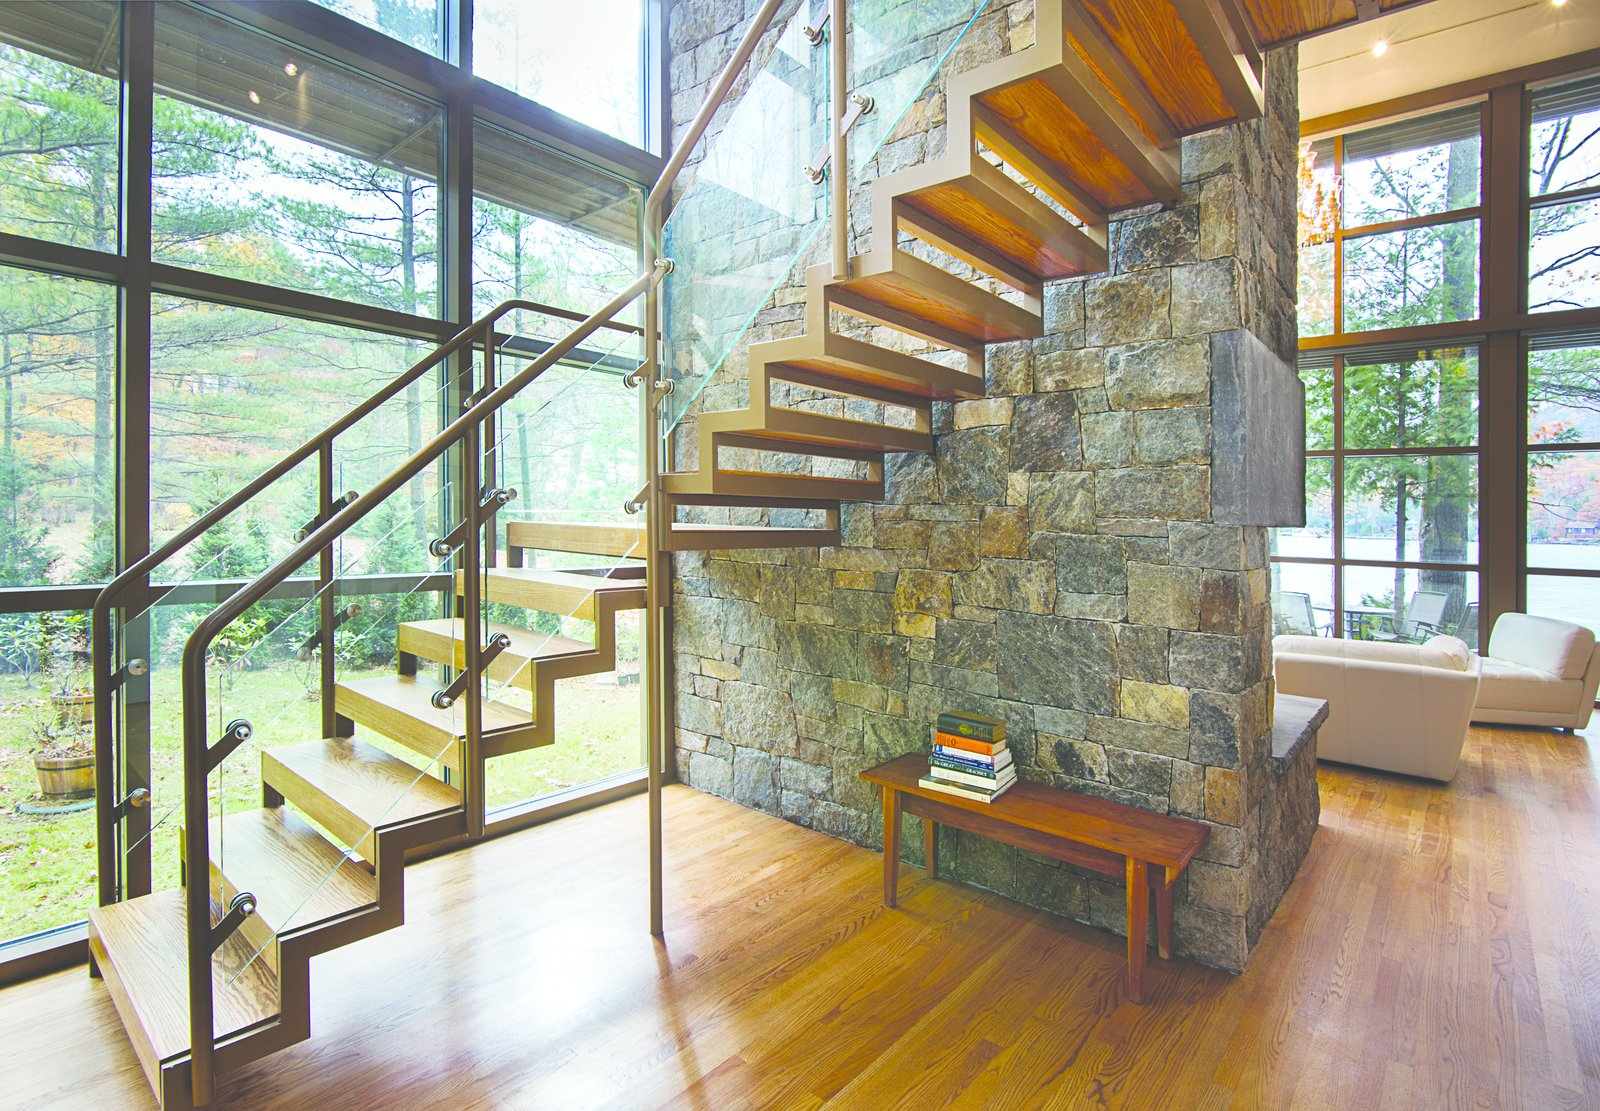 The sawtooth open staircase is anchored to granite chimney providing views of the stone through the stairway as well as, outside through the large glass wall behind the stair.